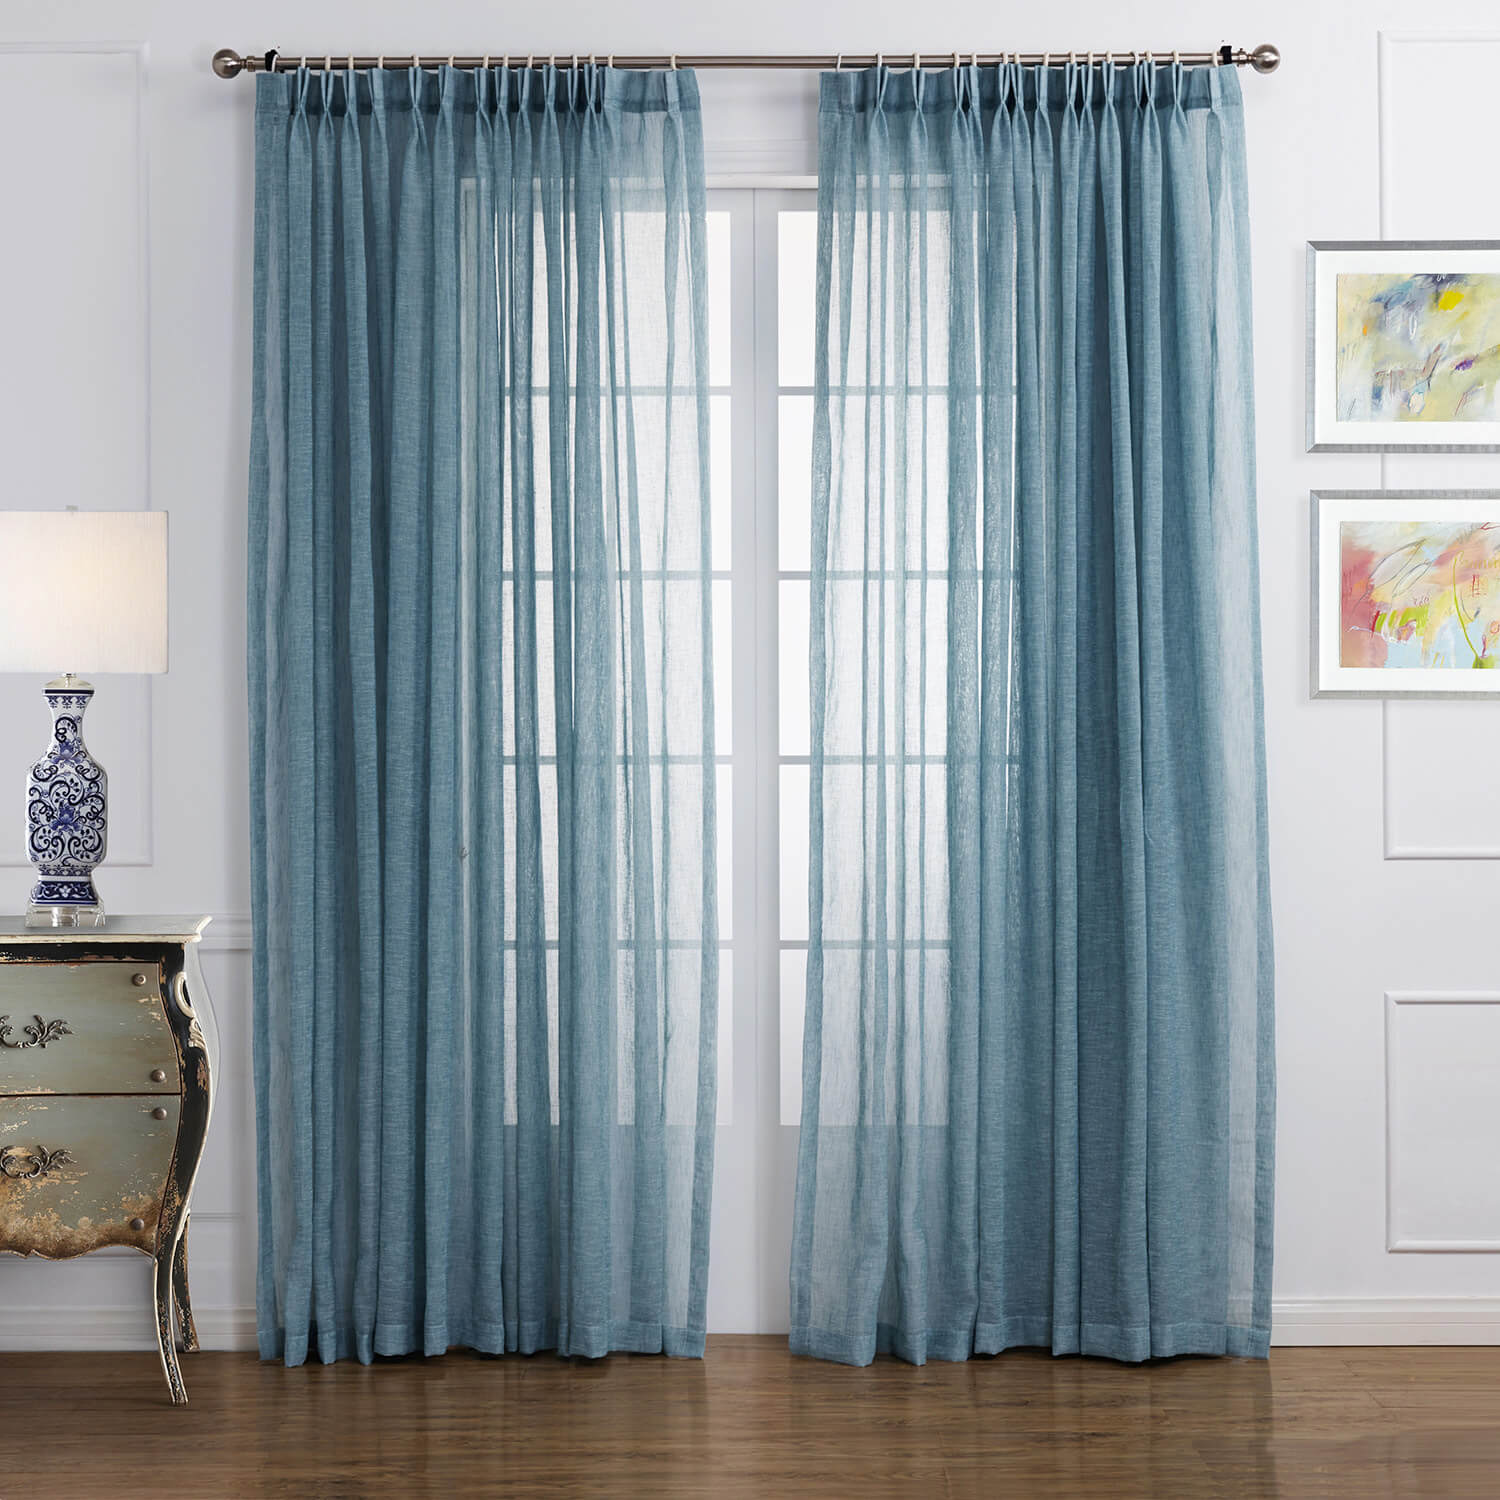 Blue Linen Sheer Curtains For Living Room 2 Panels Anady Top